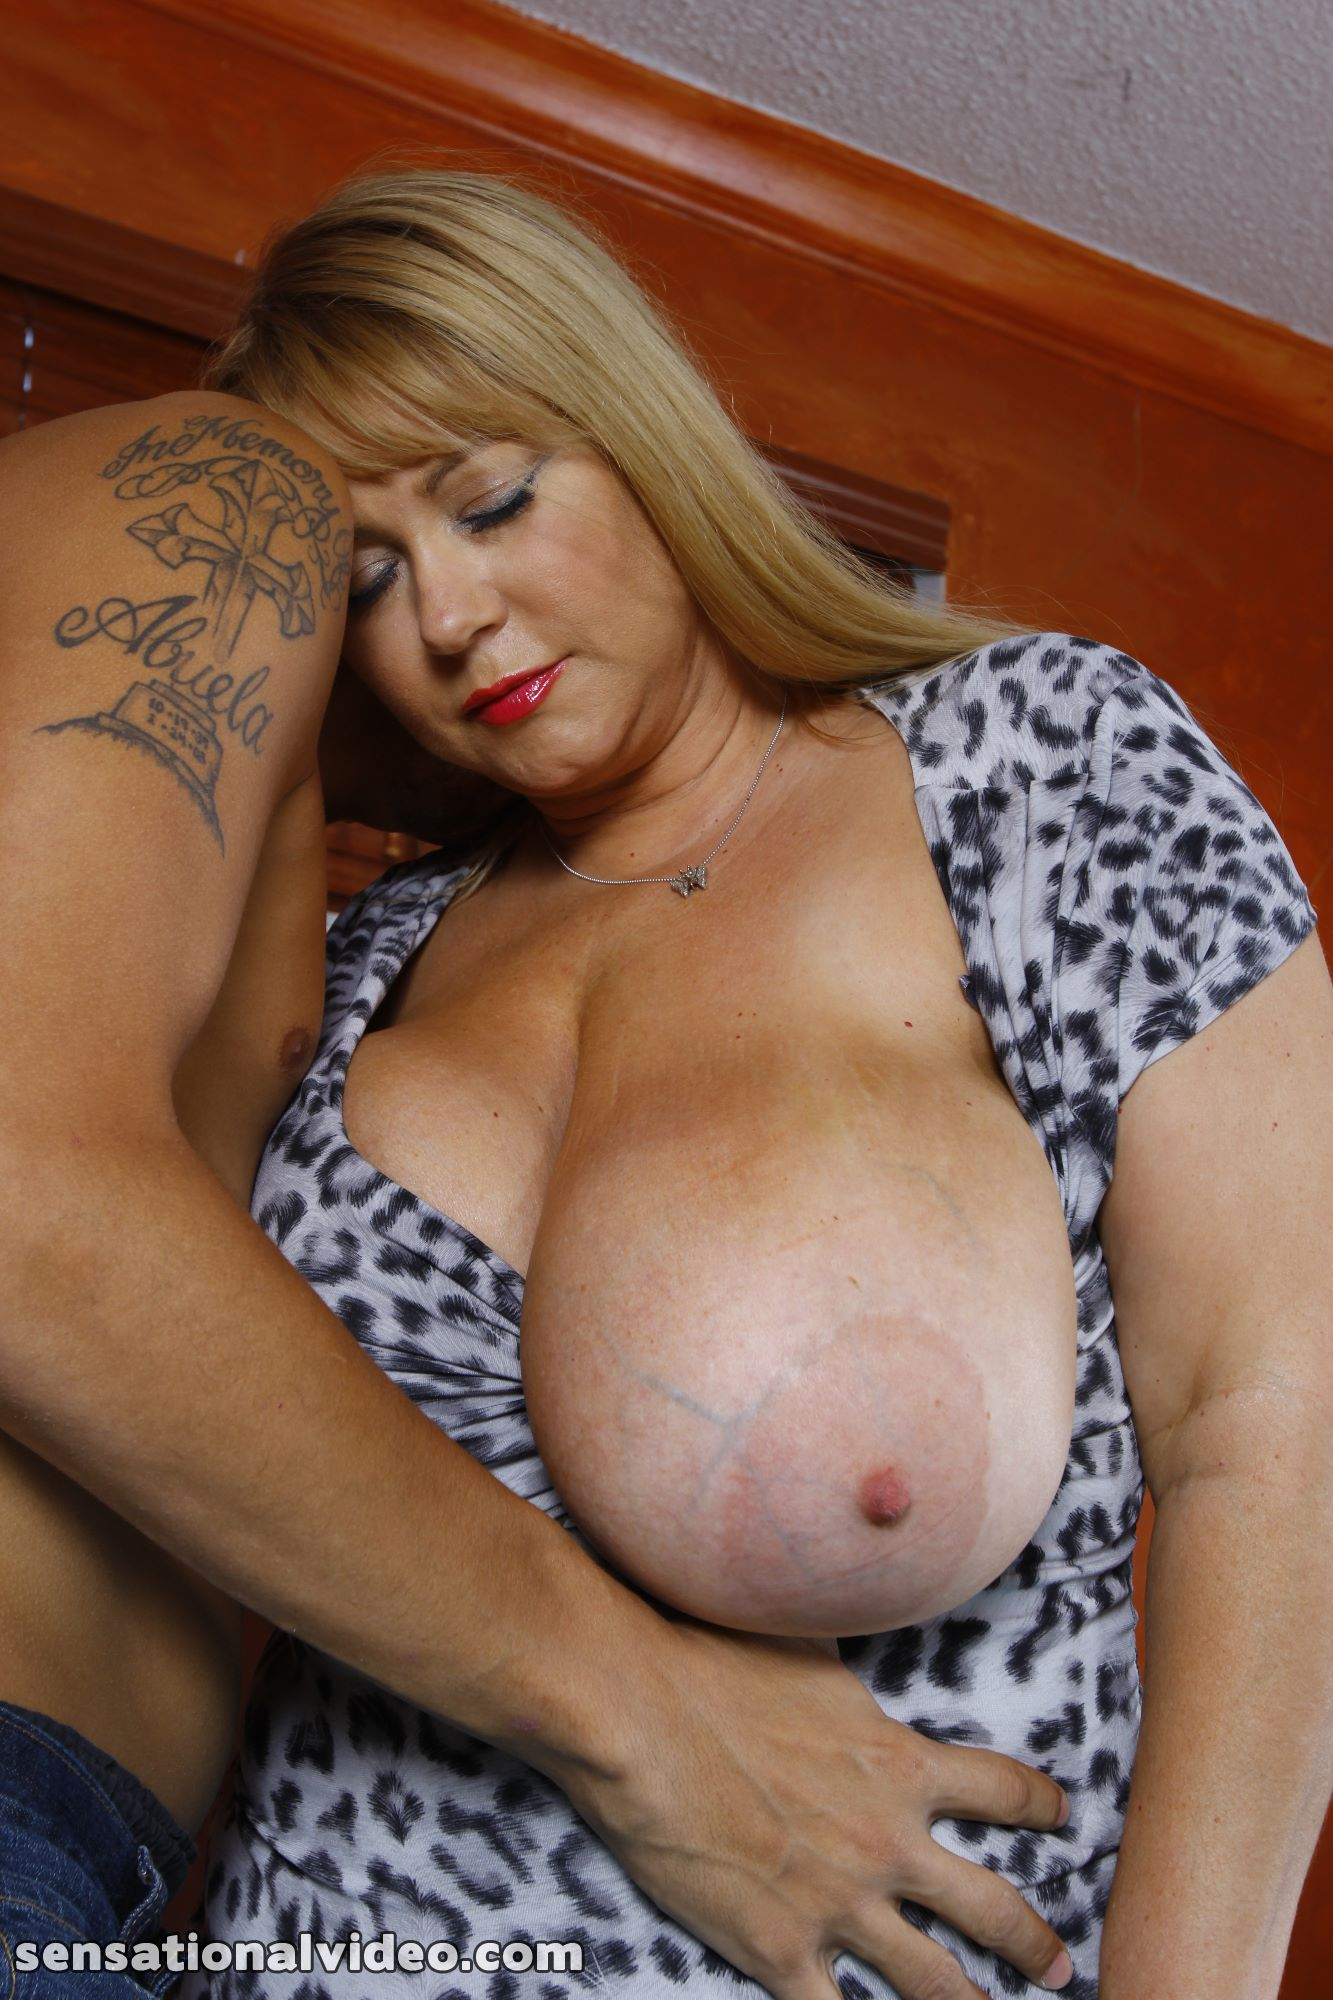 lesgalls spicytitties plumperpass gal538 pic 17